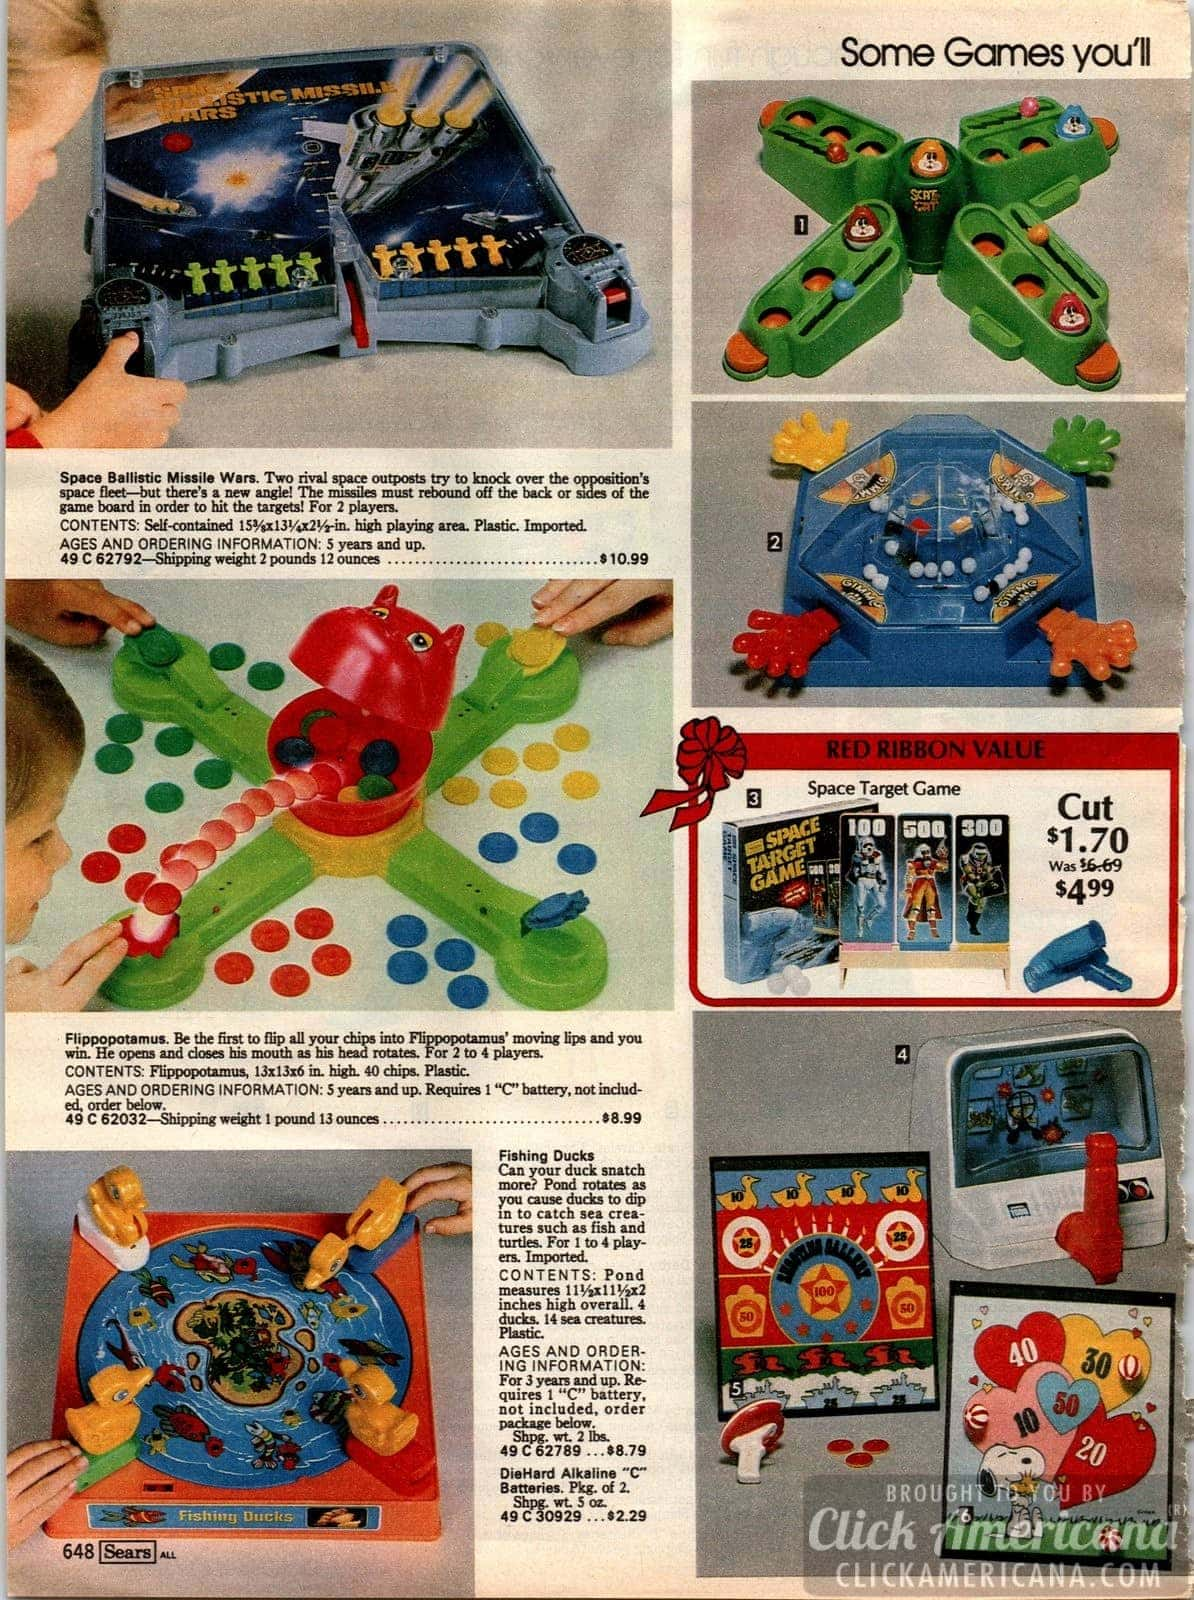 Vintage games - including Flippopotamus, Fishing Ducks, Space Ballistic Missile Wars